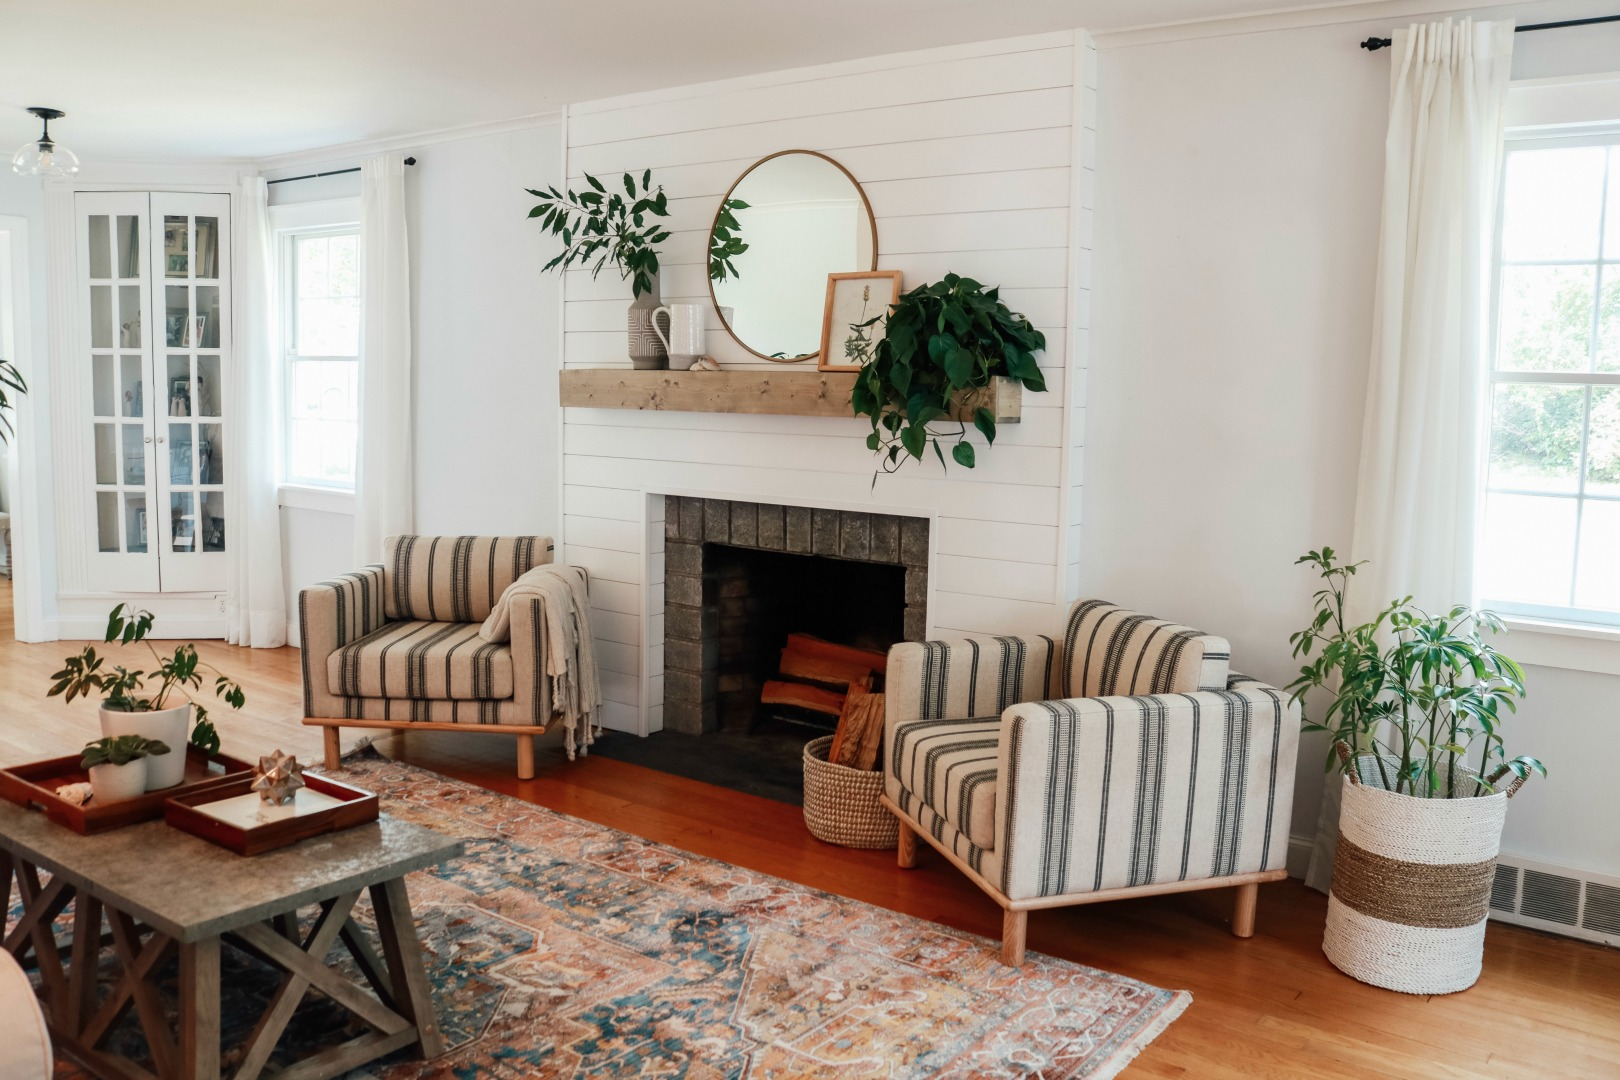 Living Room Affordable Cozy Makeover - Nesting With Grace